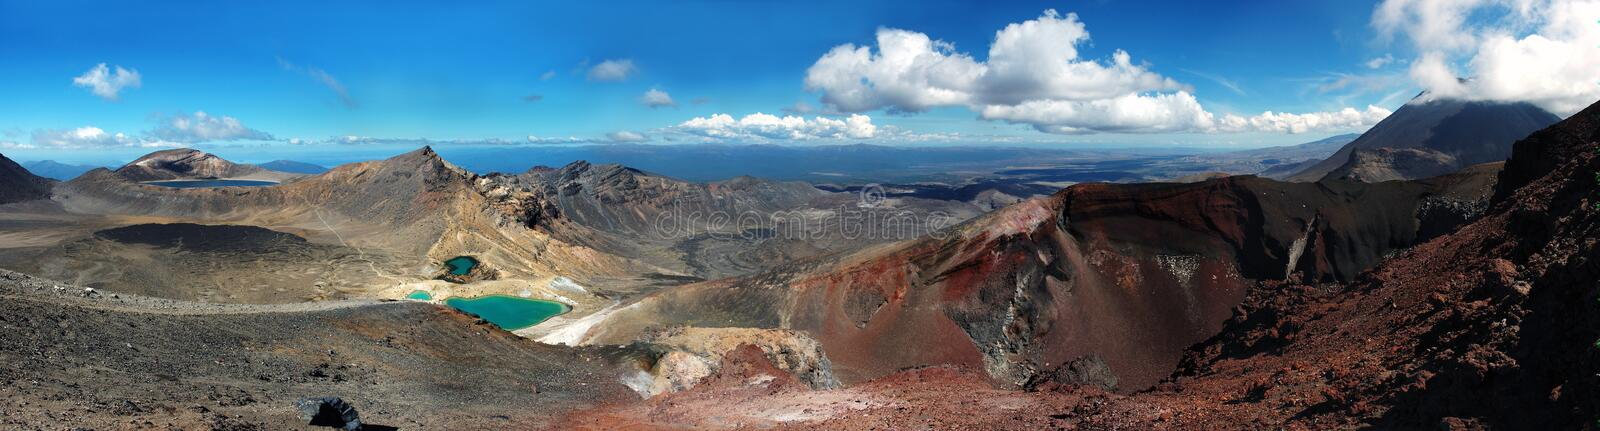 Download Tongariro Crossing Grand Panorama Stock Photo - Image: 9026820